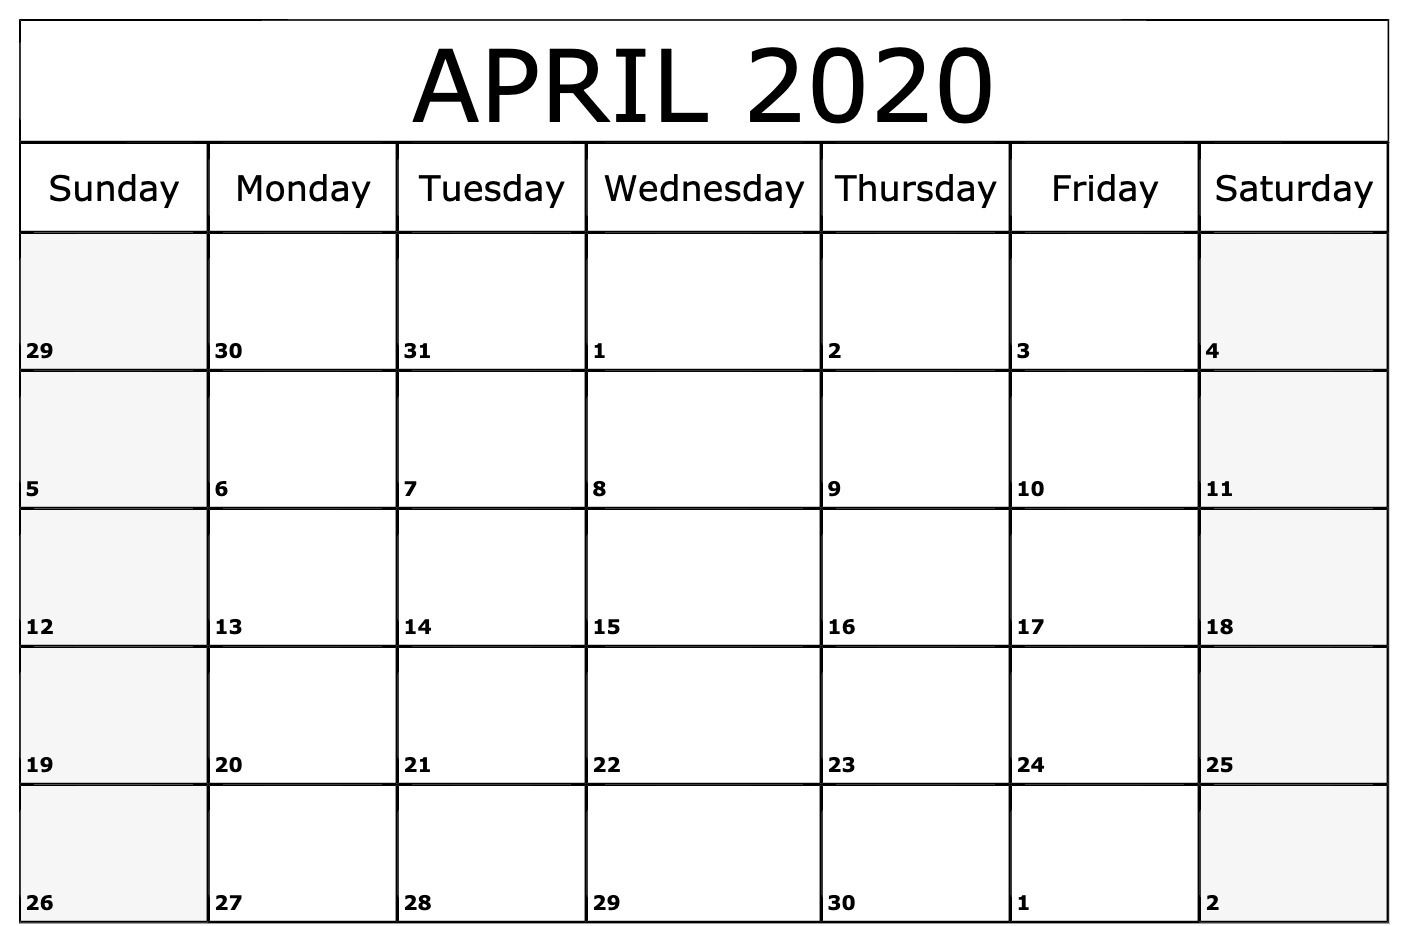 April 2020 Calendar Printable Template Editable Calendar Monthly Calendar Printable Calendar Printables